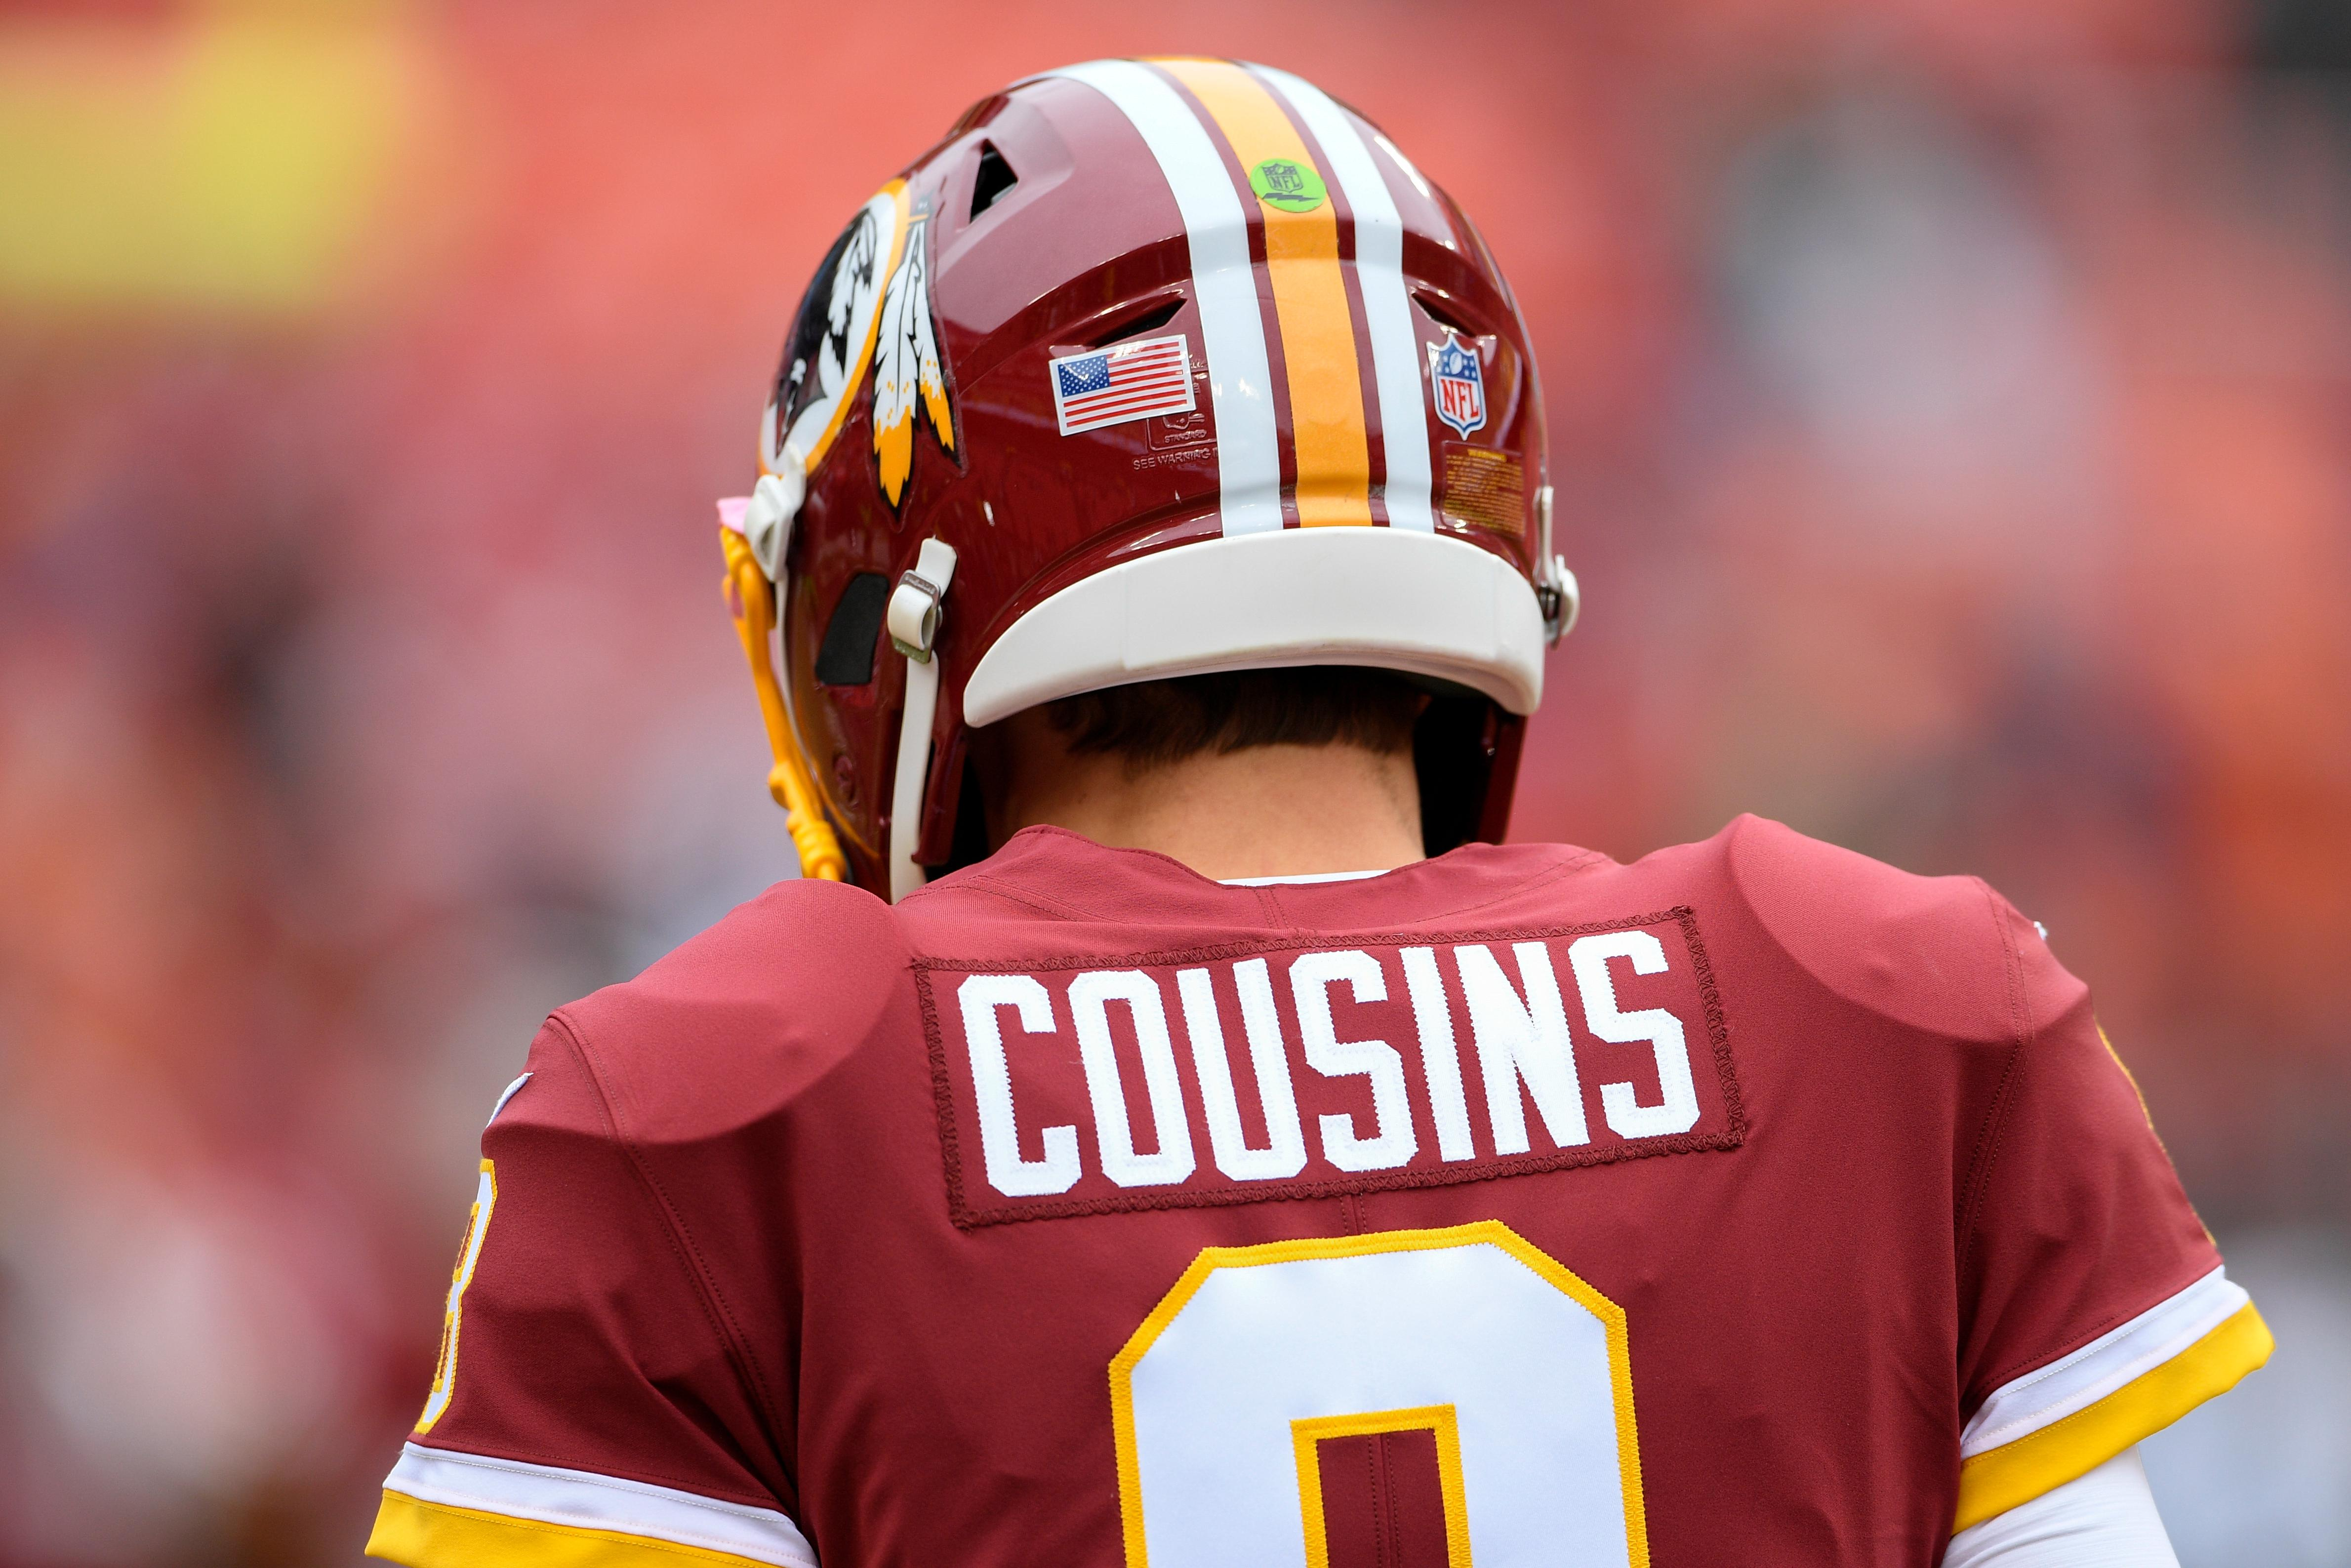 Washington Redskins quarterback Kirk Cousins (8) walks across the field before an NFL football game against the Denver Broncos in Landover, Md., Sunday, Dec 24, 2017. (AP Photo/Nick Wass)